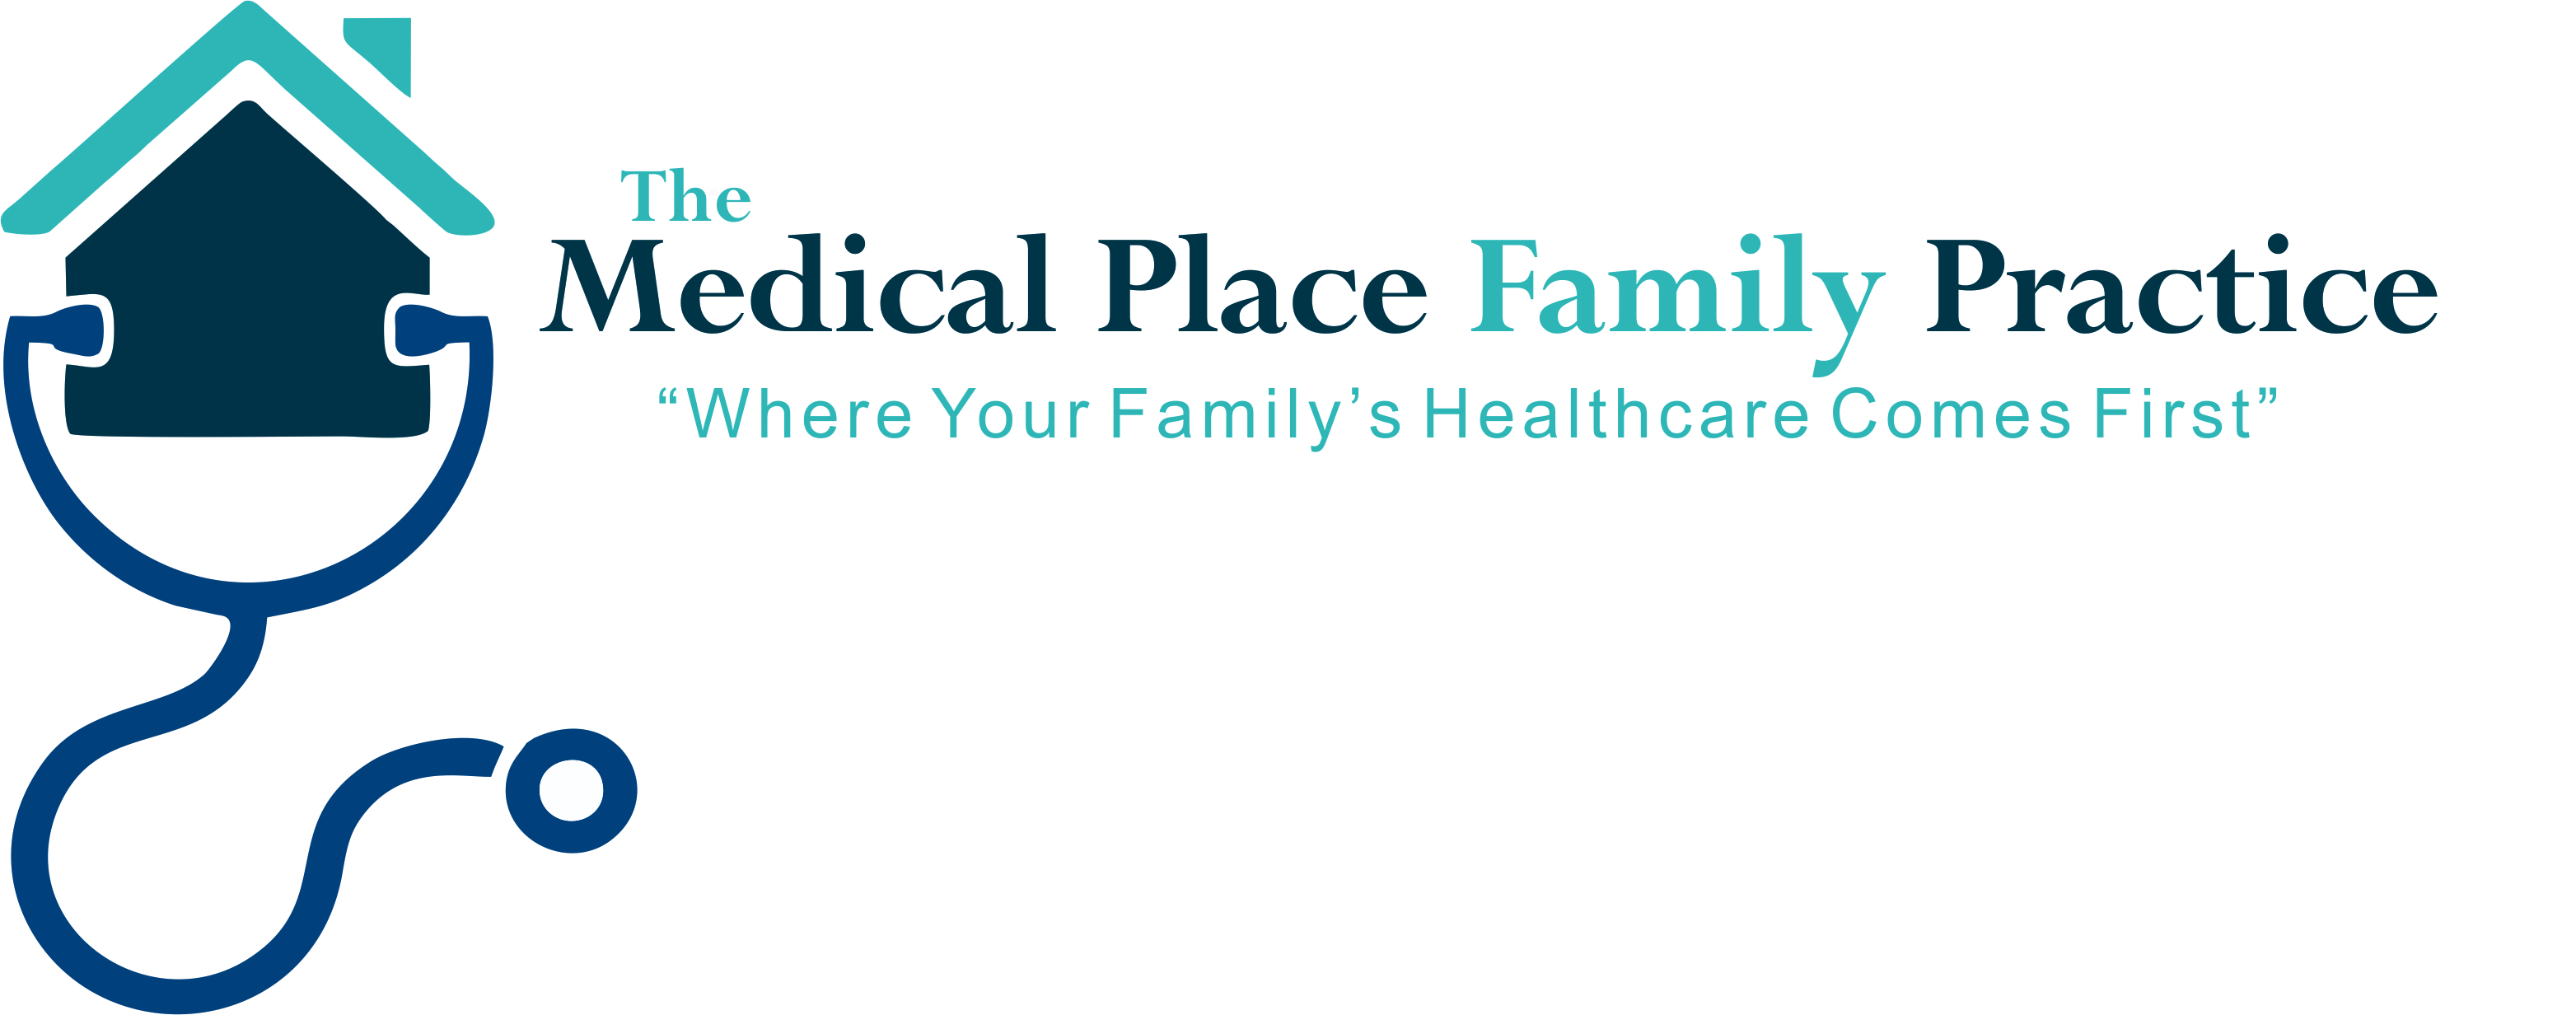 The Medical Place Family Practice